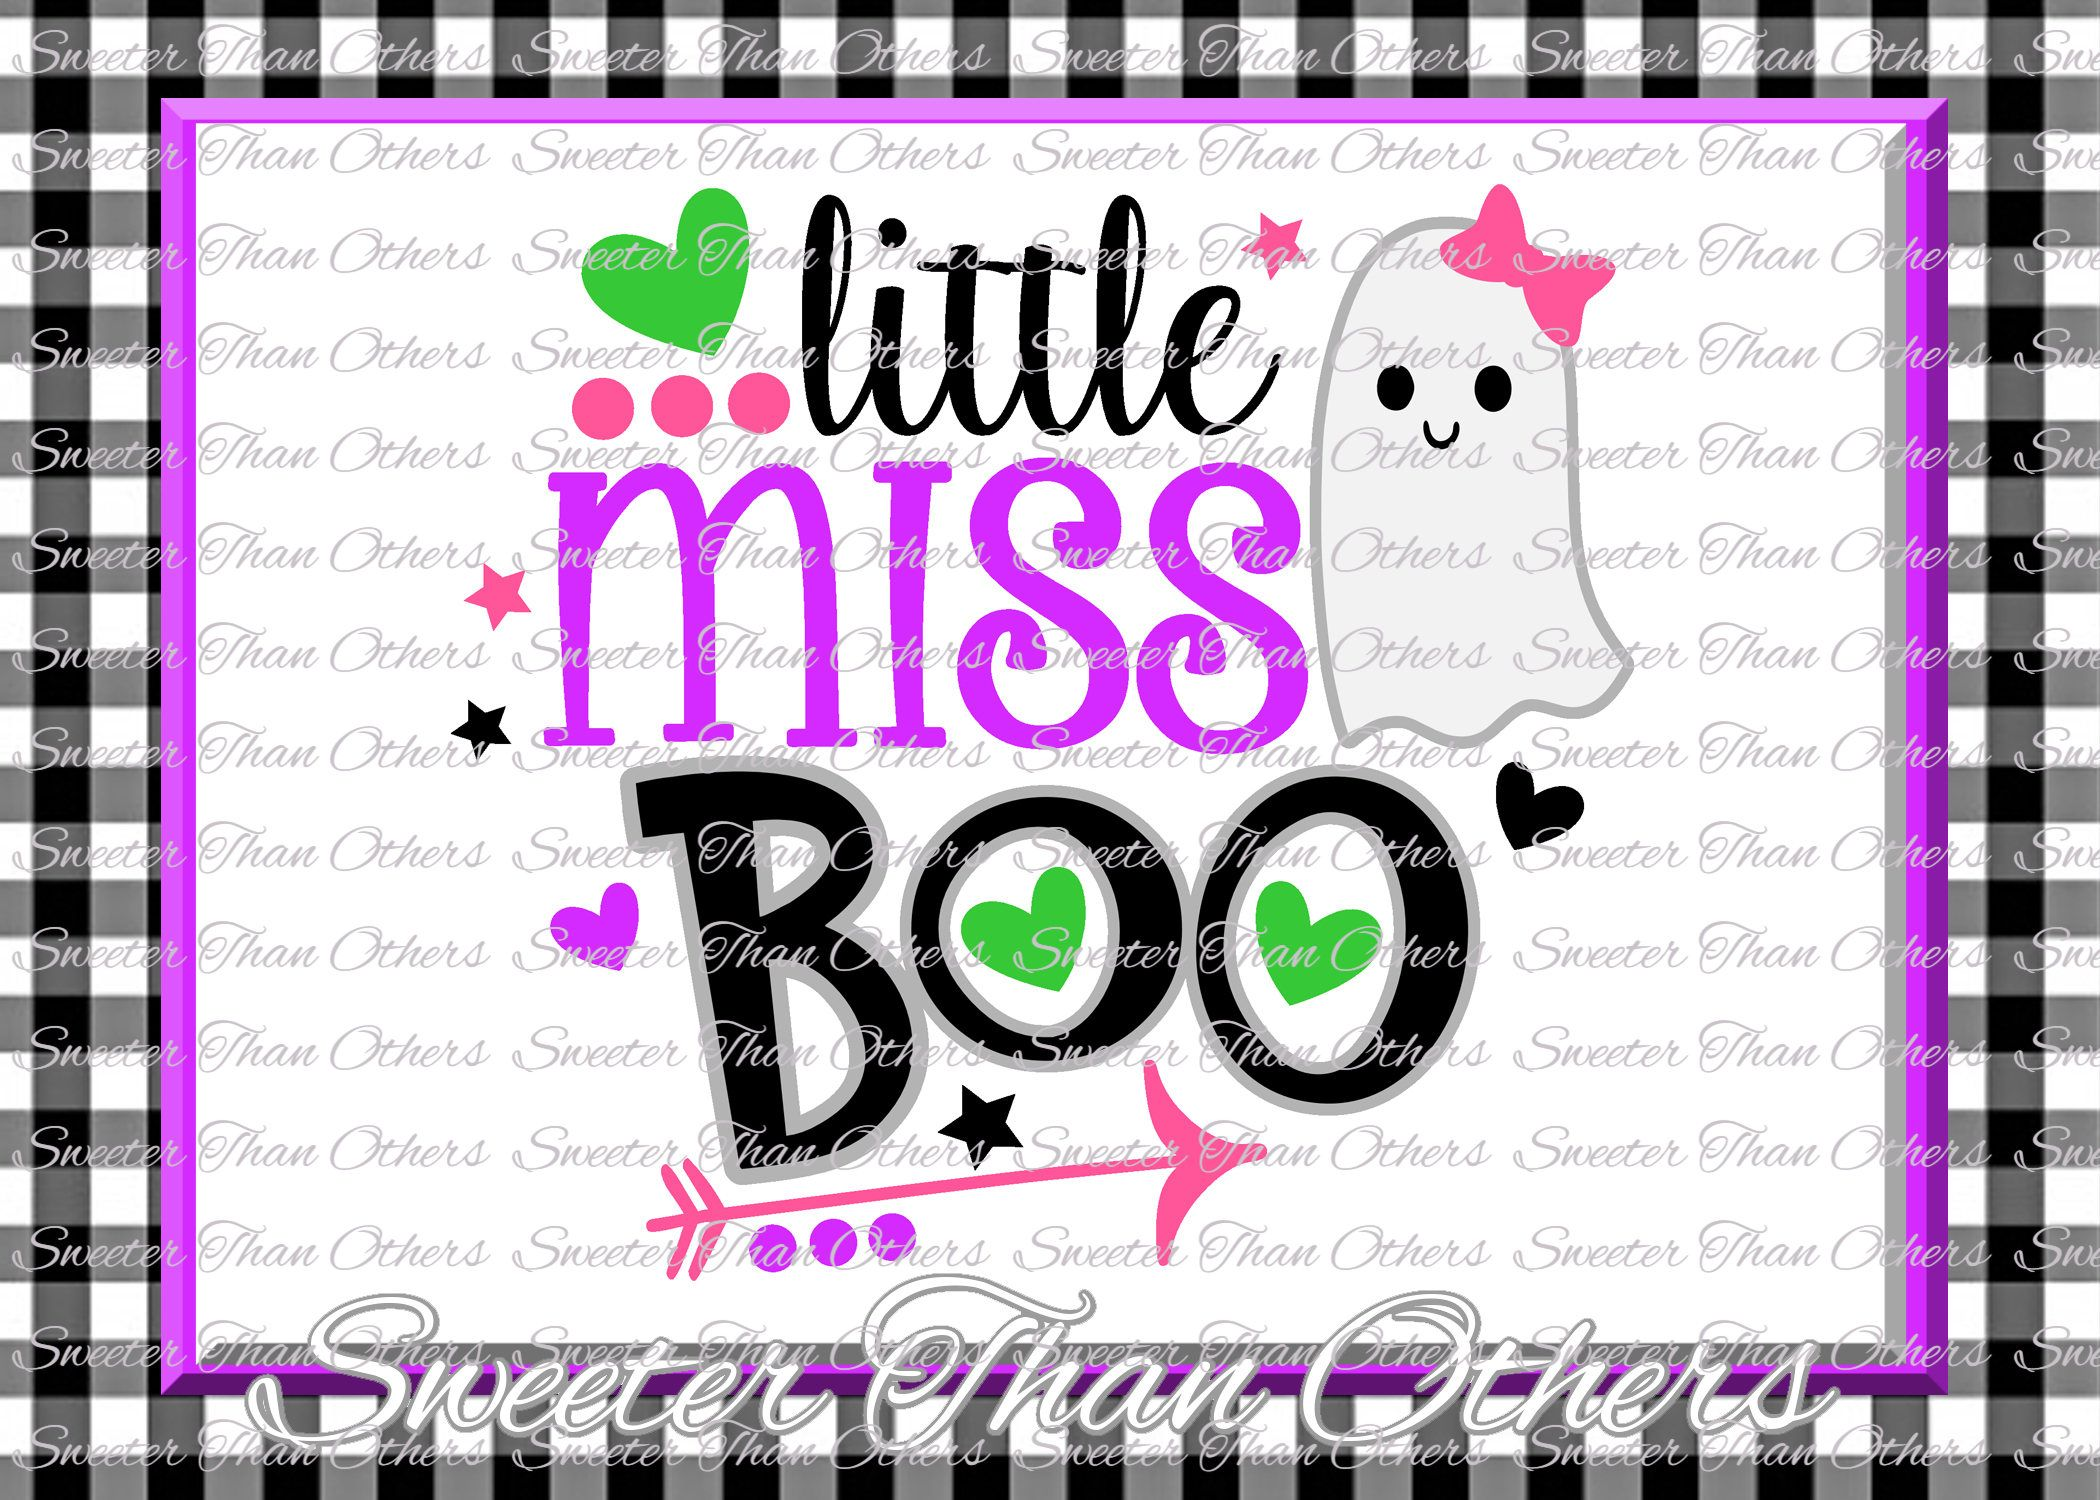 Halloween svg, Little Miss Boo Svg Boo Ghost Design Dxf Silhouette Studios Cameo Cricut cut file INSTANT DOWNLOAD Vinyl Design, Htv Scal Mtc by SweeterThanOthers on Etsy